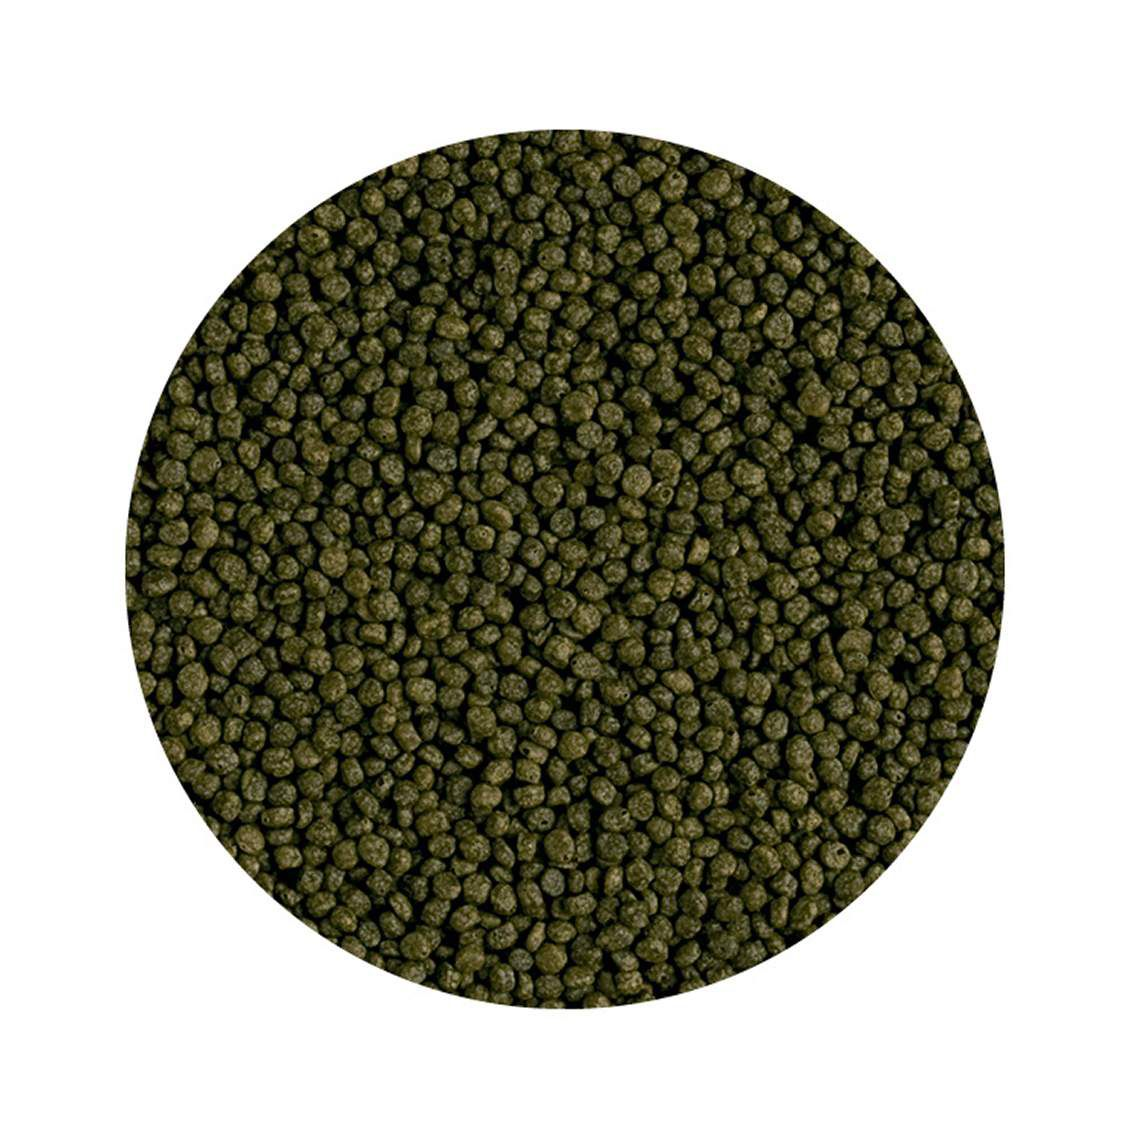 Tropical Flower Horn Young Pellet 95g